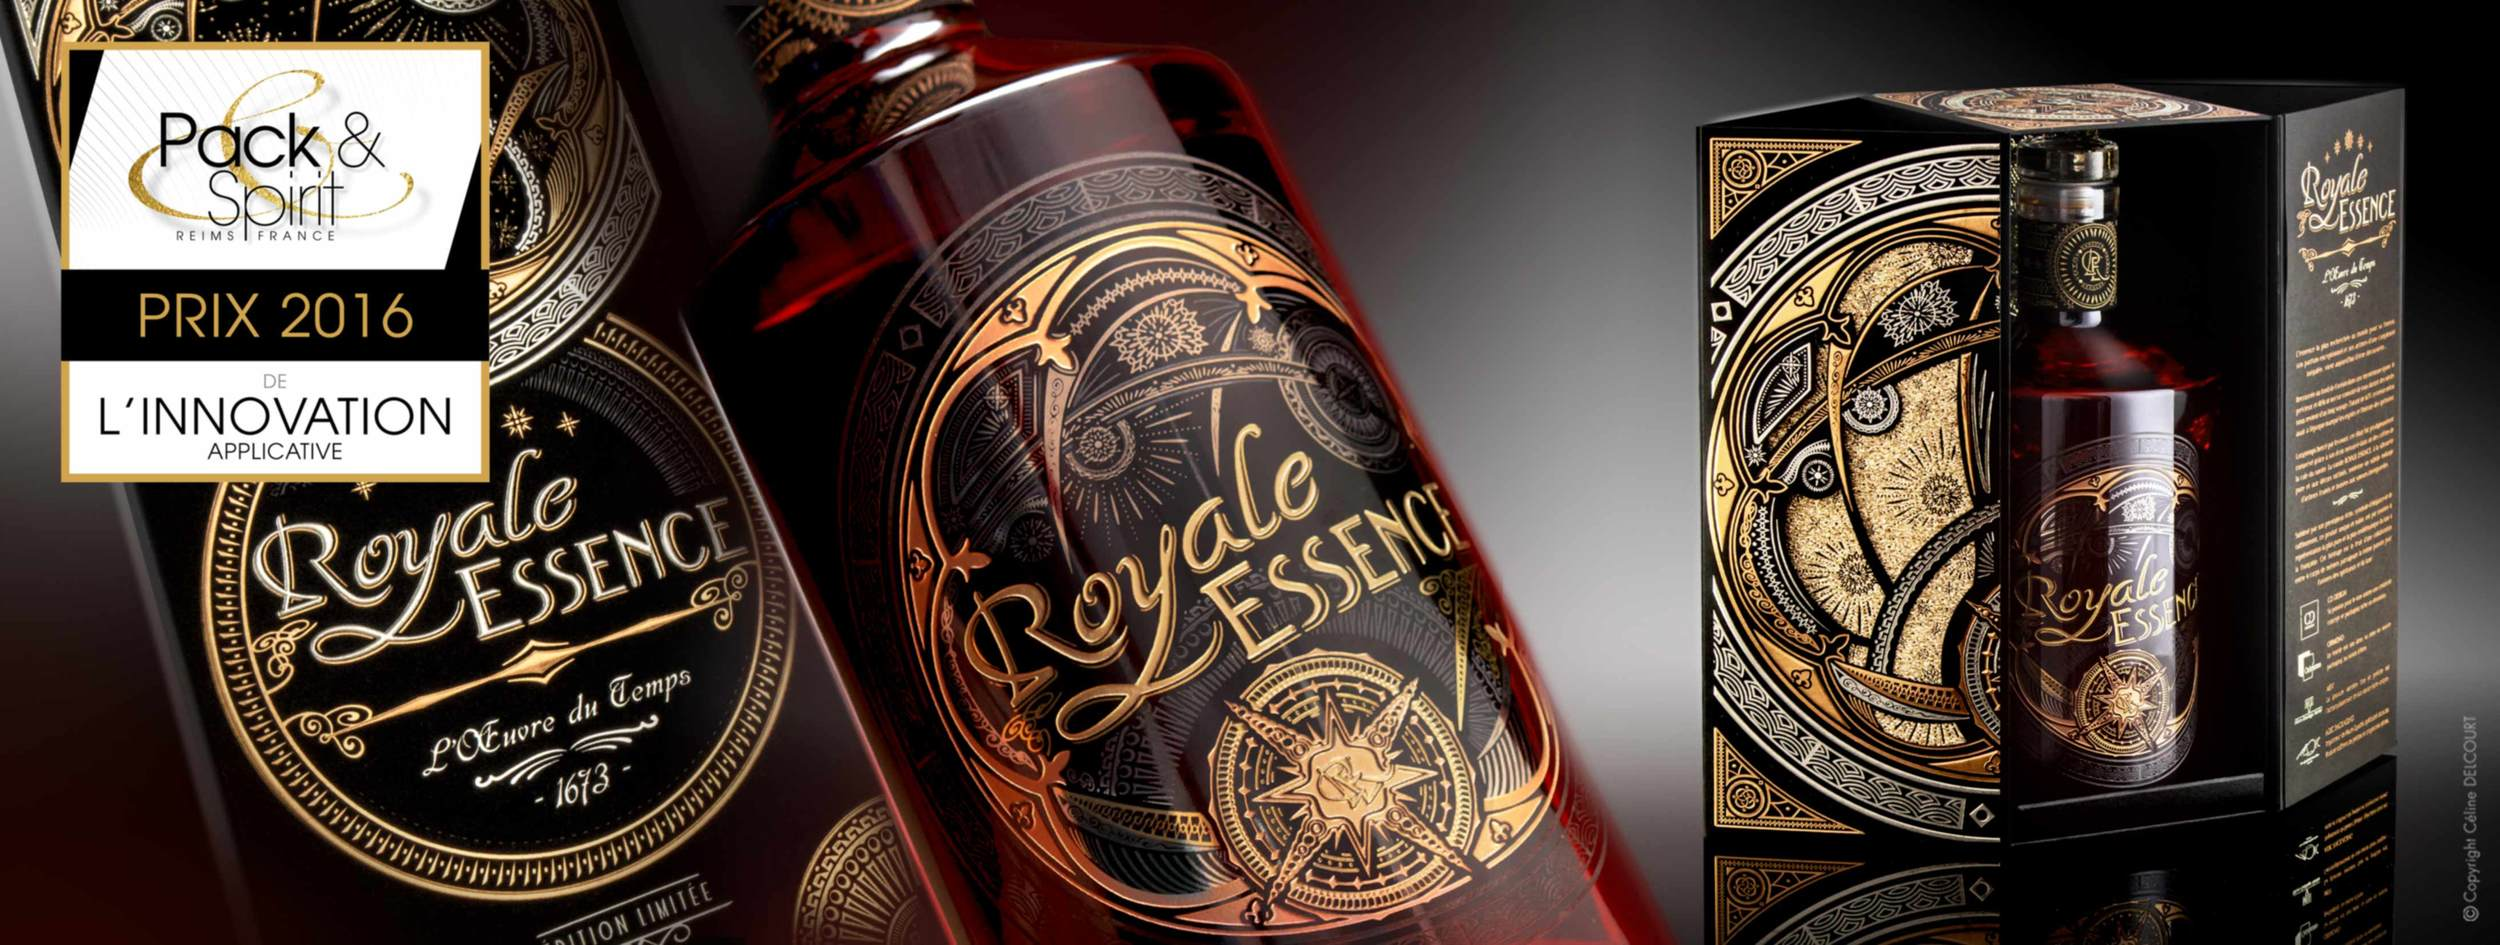 ROYALE ESSENCE au salon Pack & Spirit à Reims